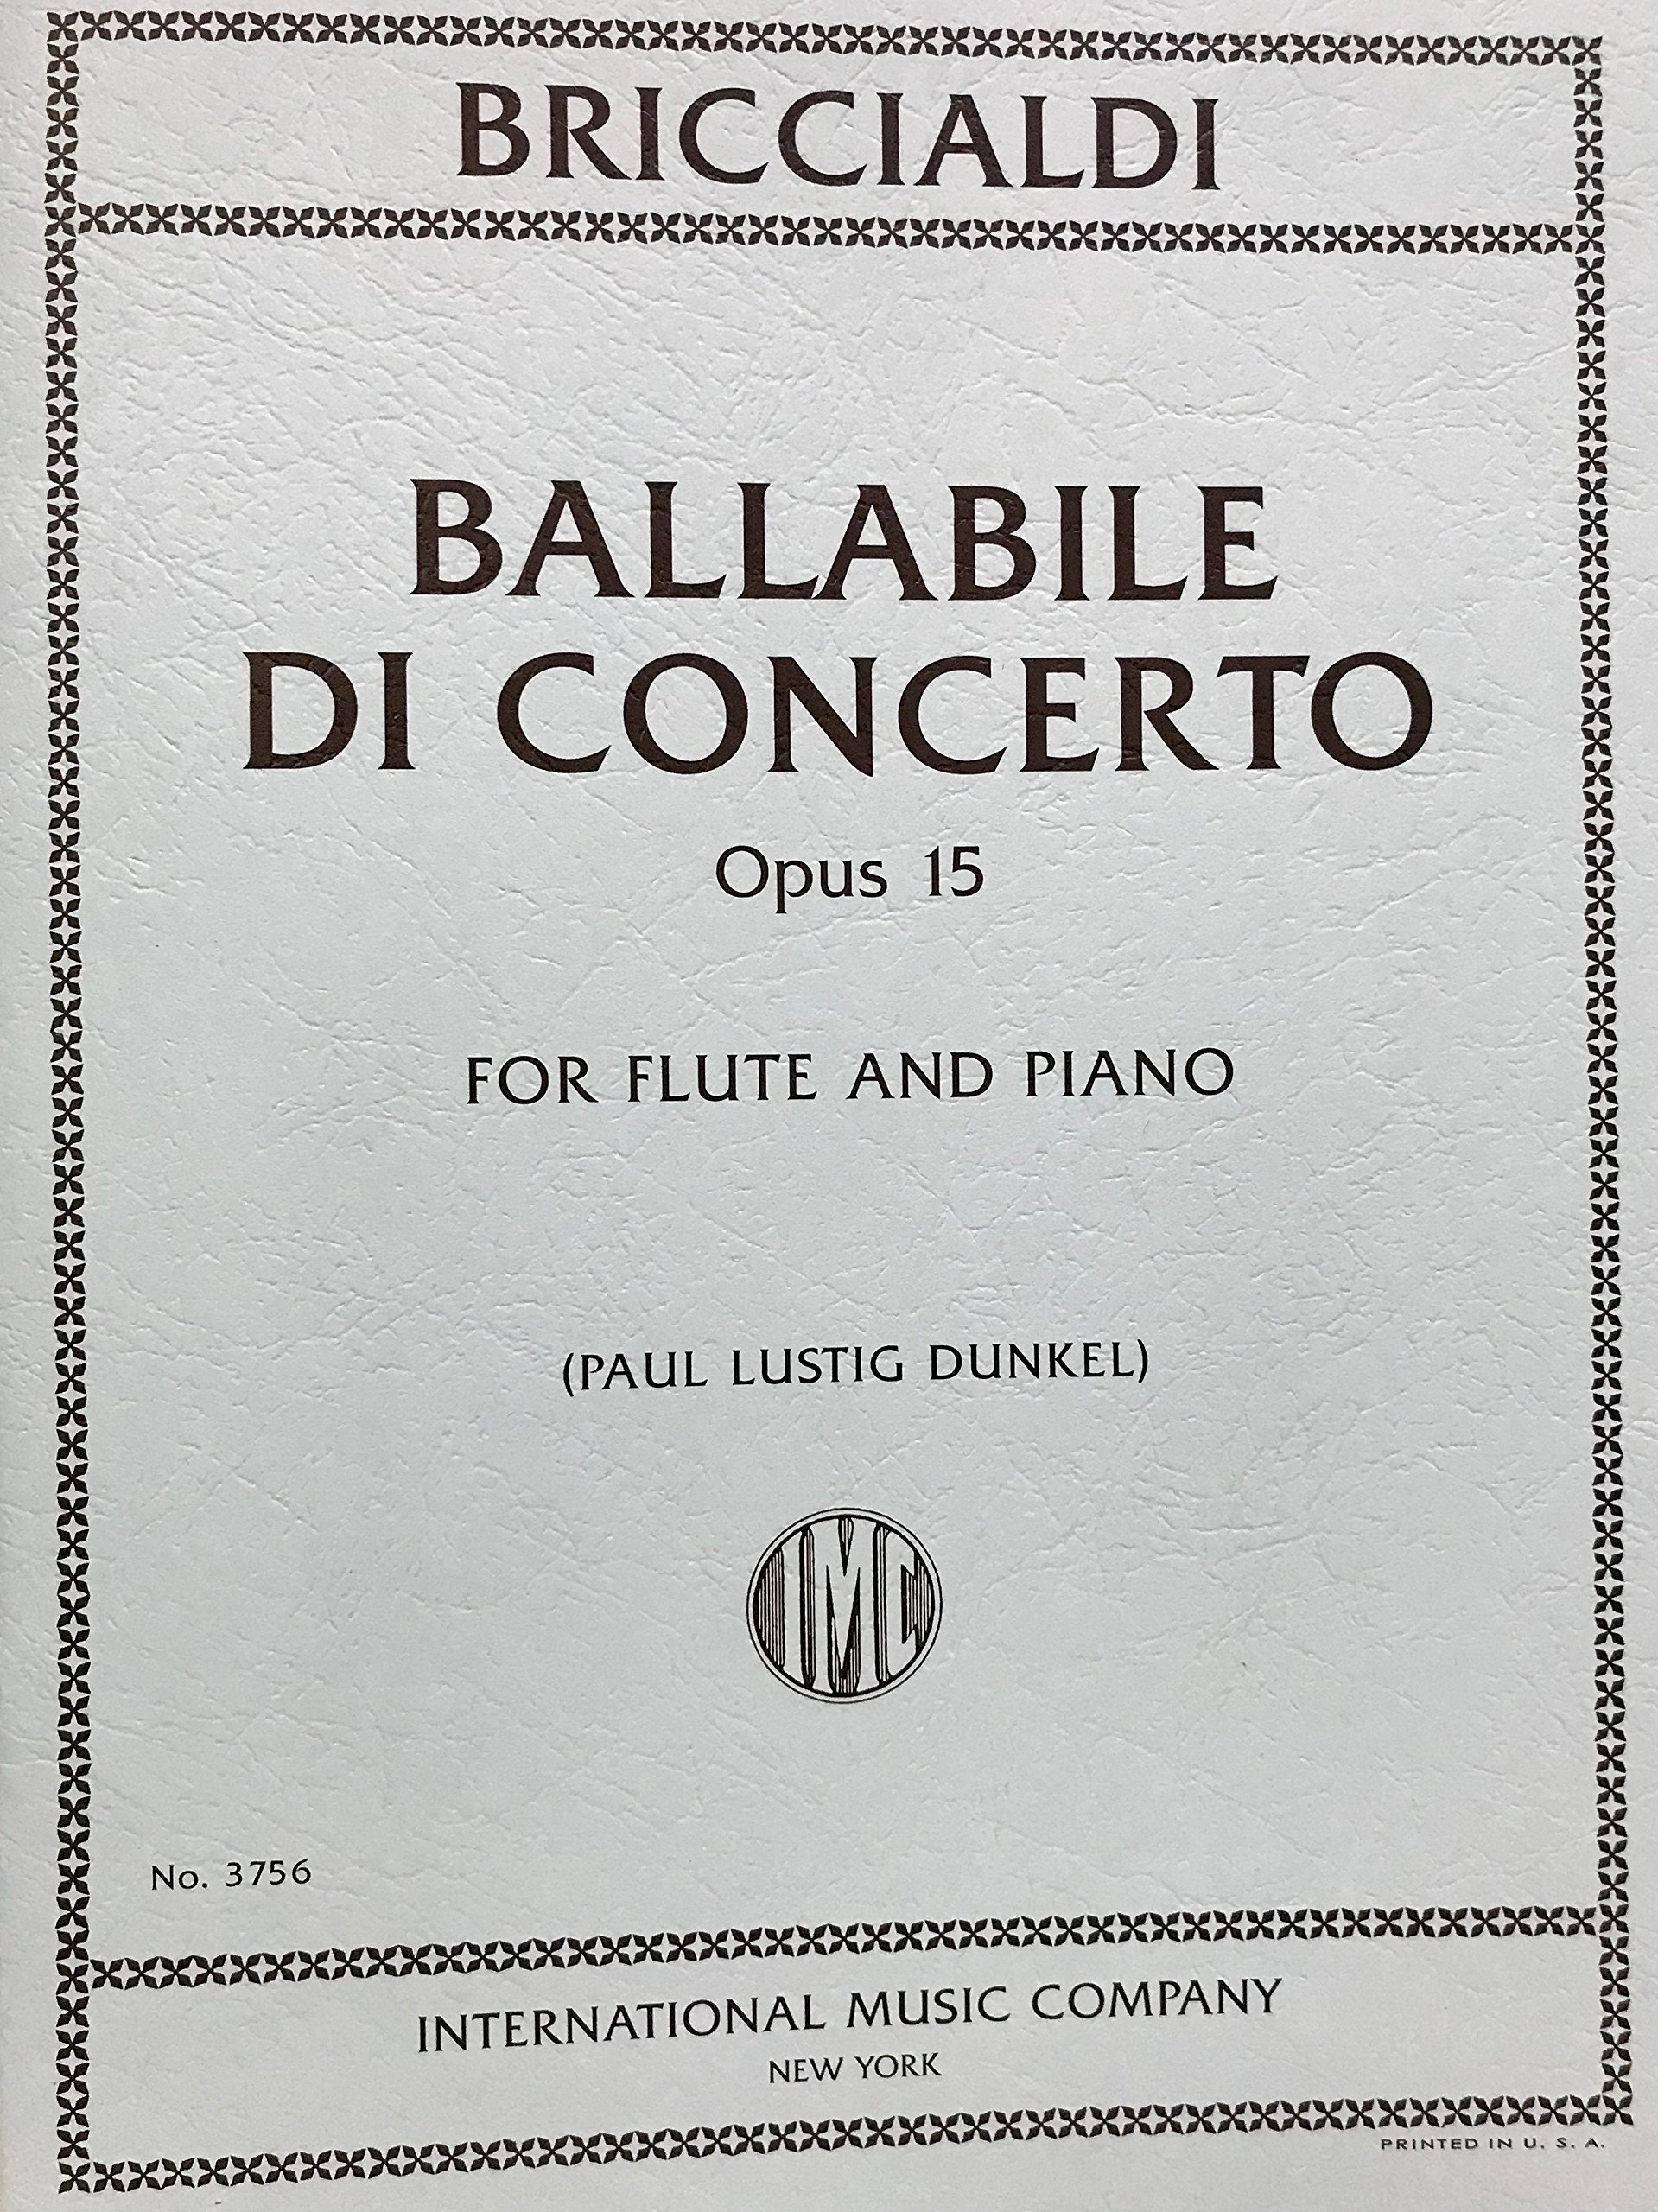 Read Online Briccialdi, Ballabile Di Concerto Opus 15 for Flute and Piano edited by Paul Lustig Dunkel International Music Company No. 3756 PDF